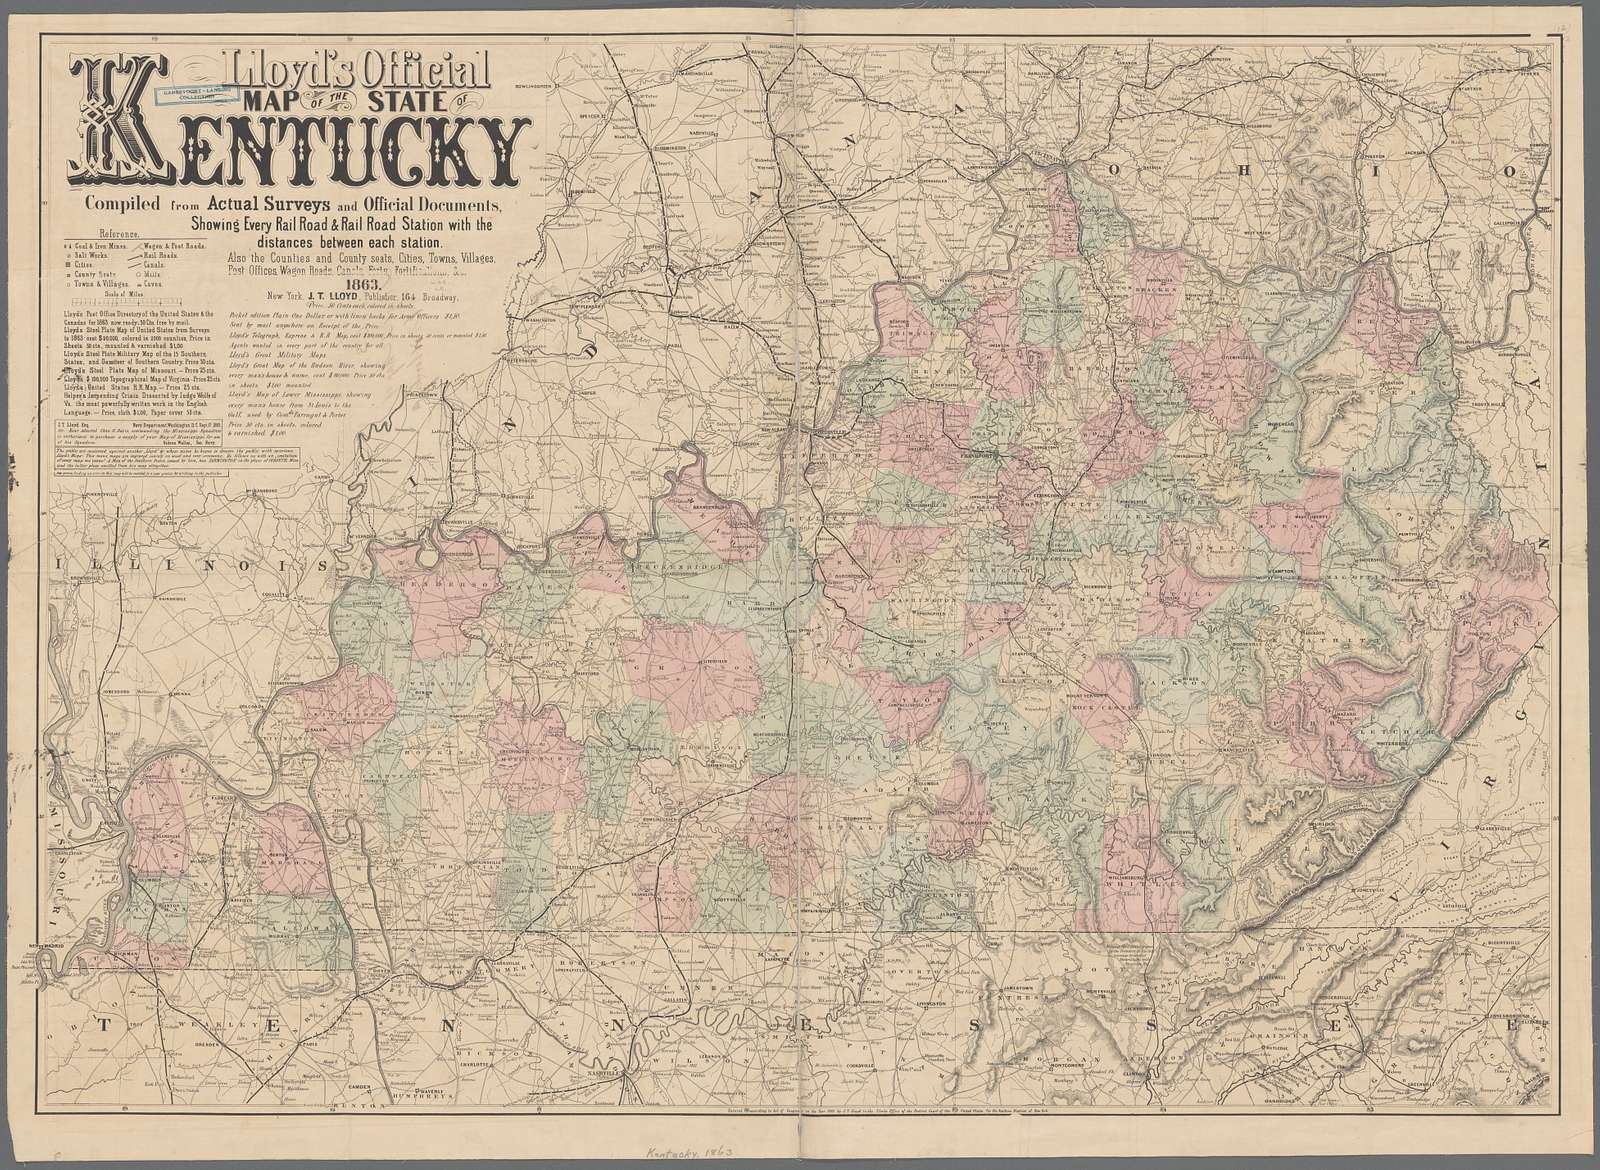 Lloyd's official map of the state of Kentucky : compiled from actual surveys and official documents, showing every rail road & rail road station with the distances between each station